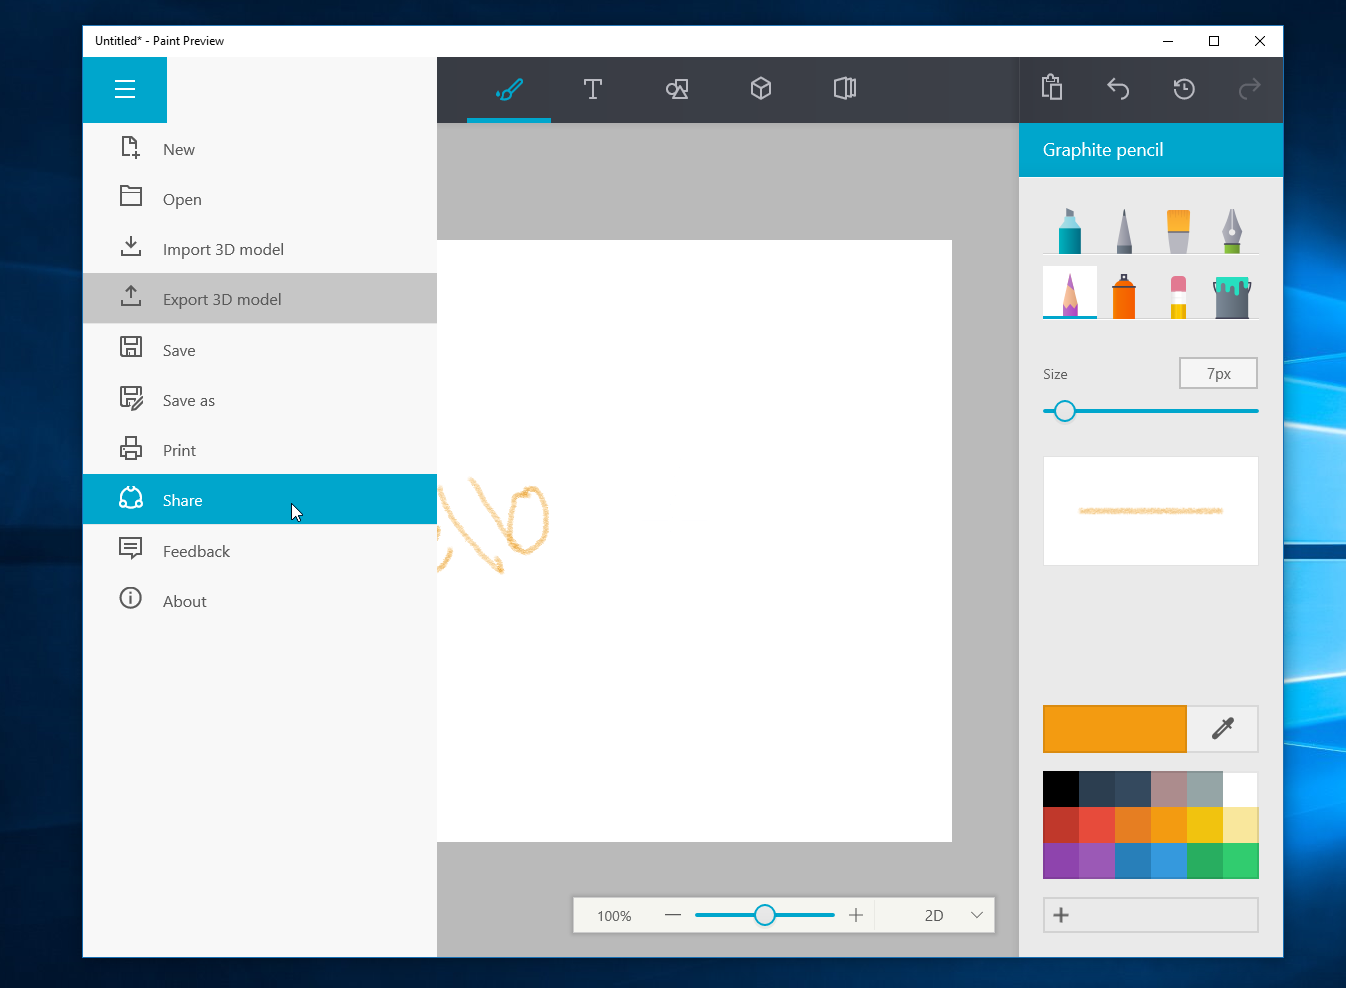 Windows 10 anniversary update neues paint als app for App to paint on pictures